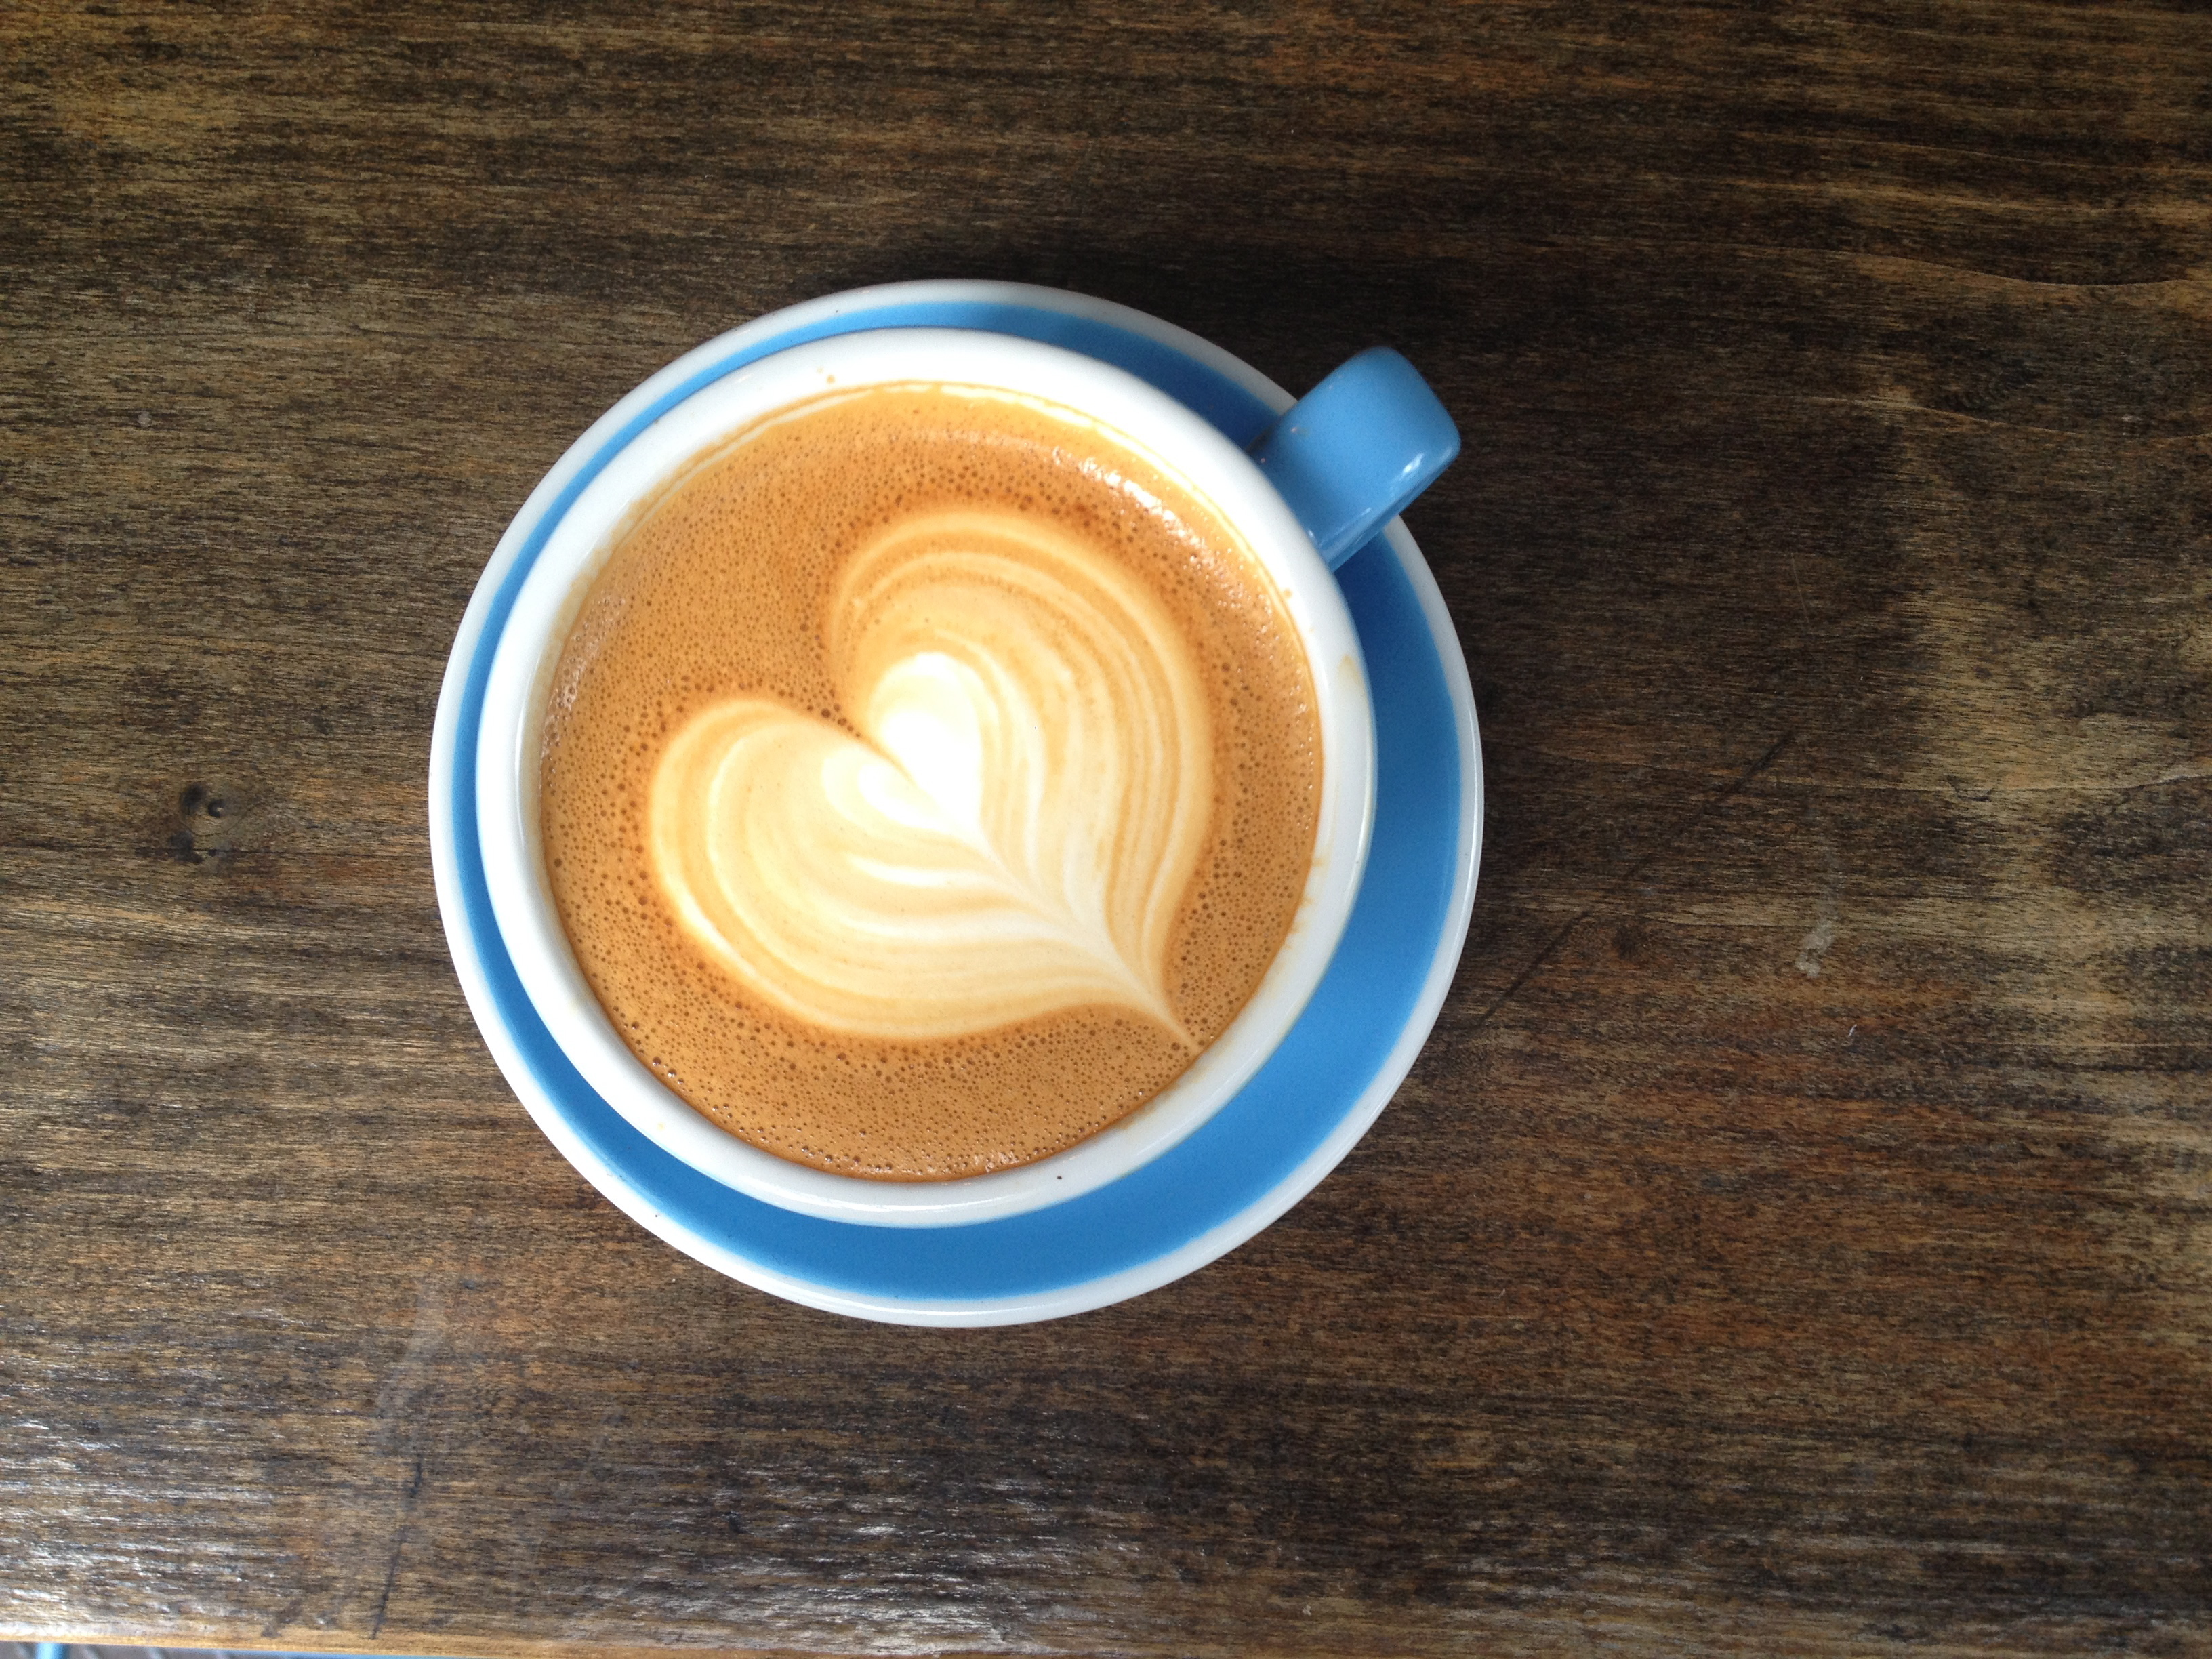 Fullsize Of Coffee Cup Heart